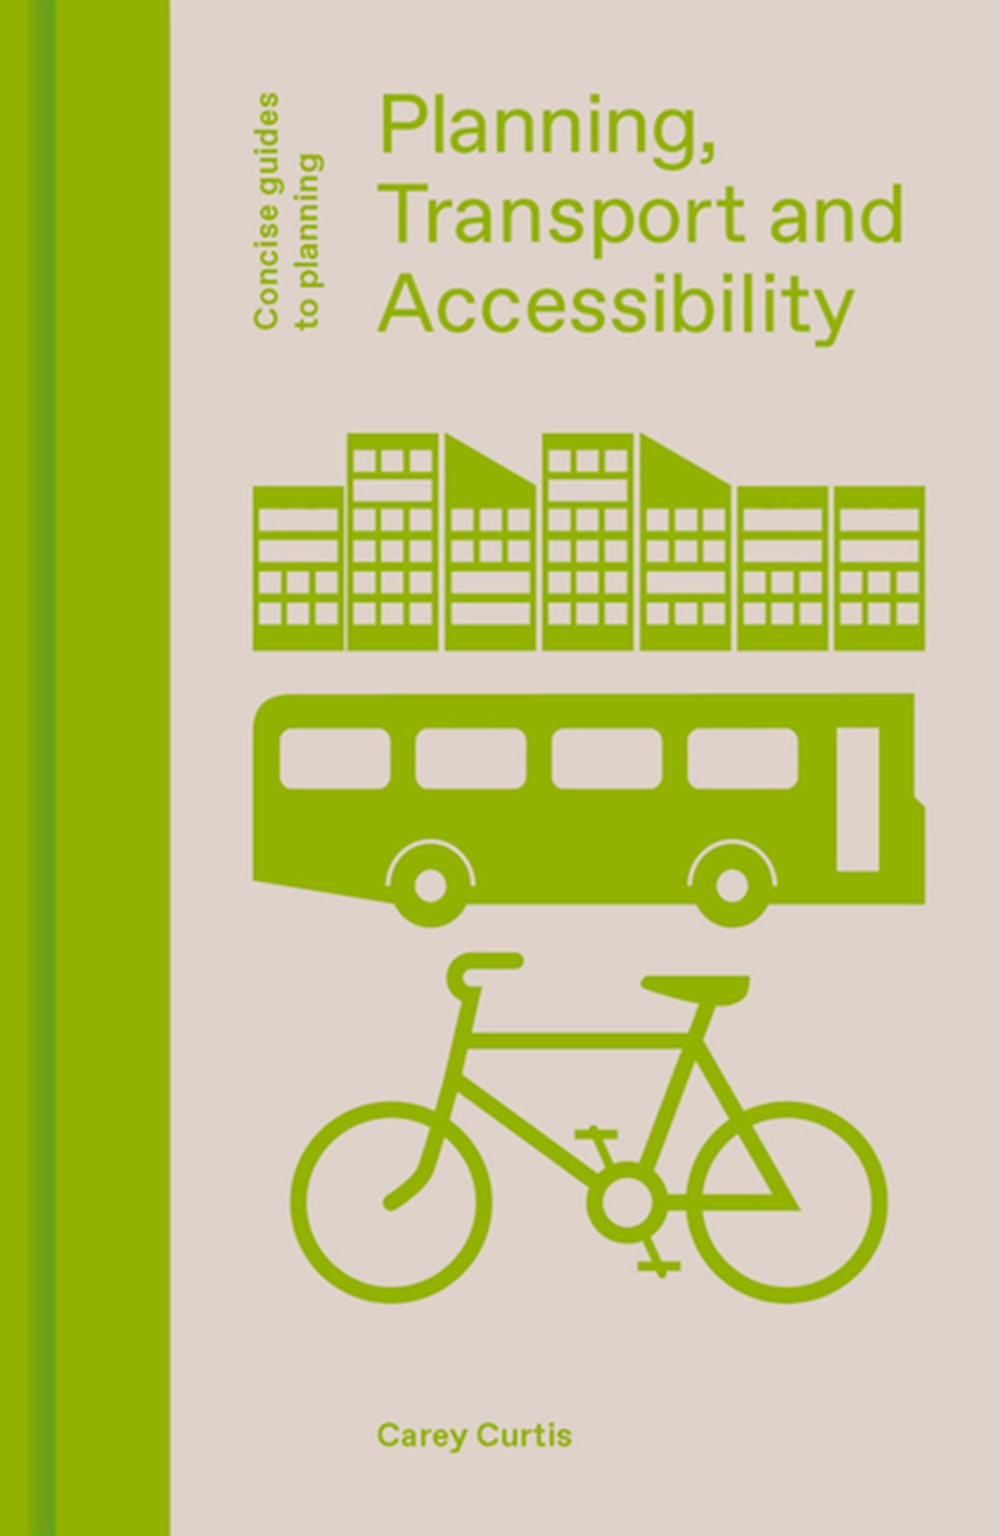 Planning, Transport and Accessibility